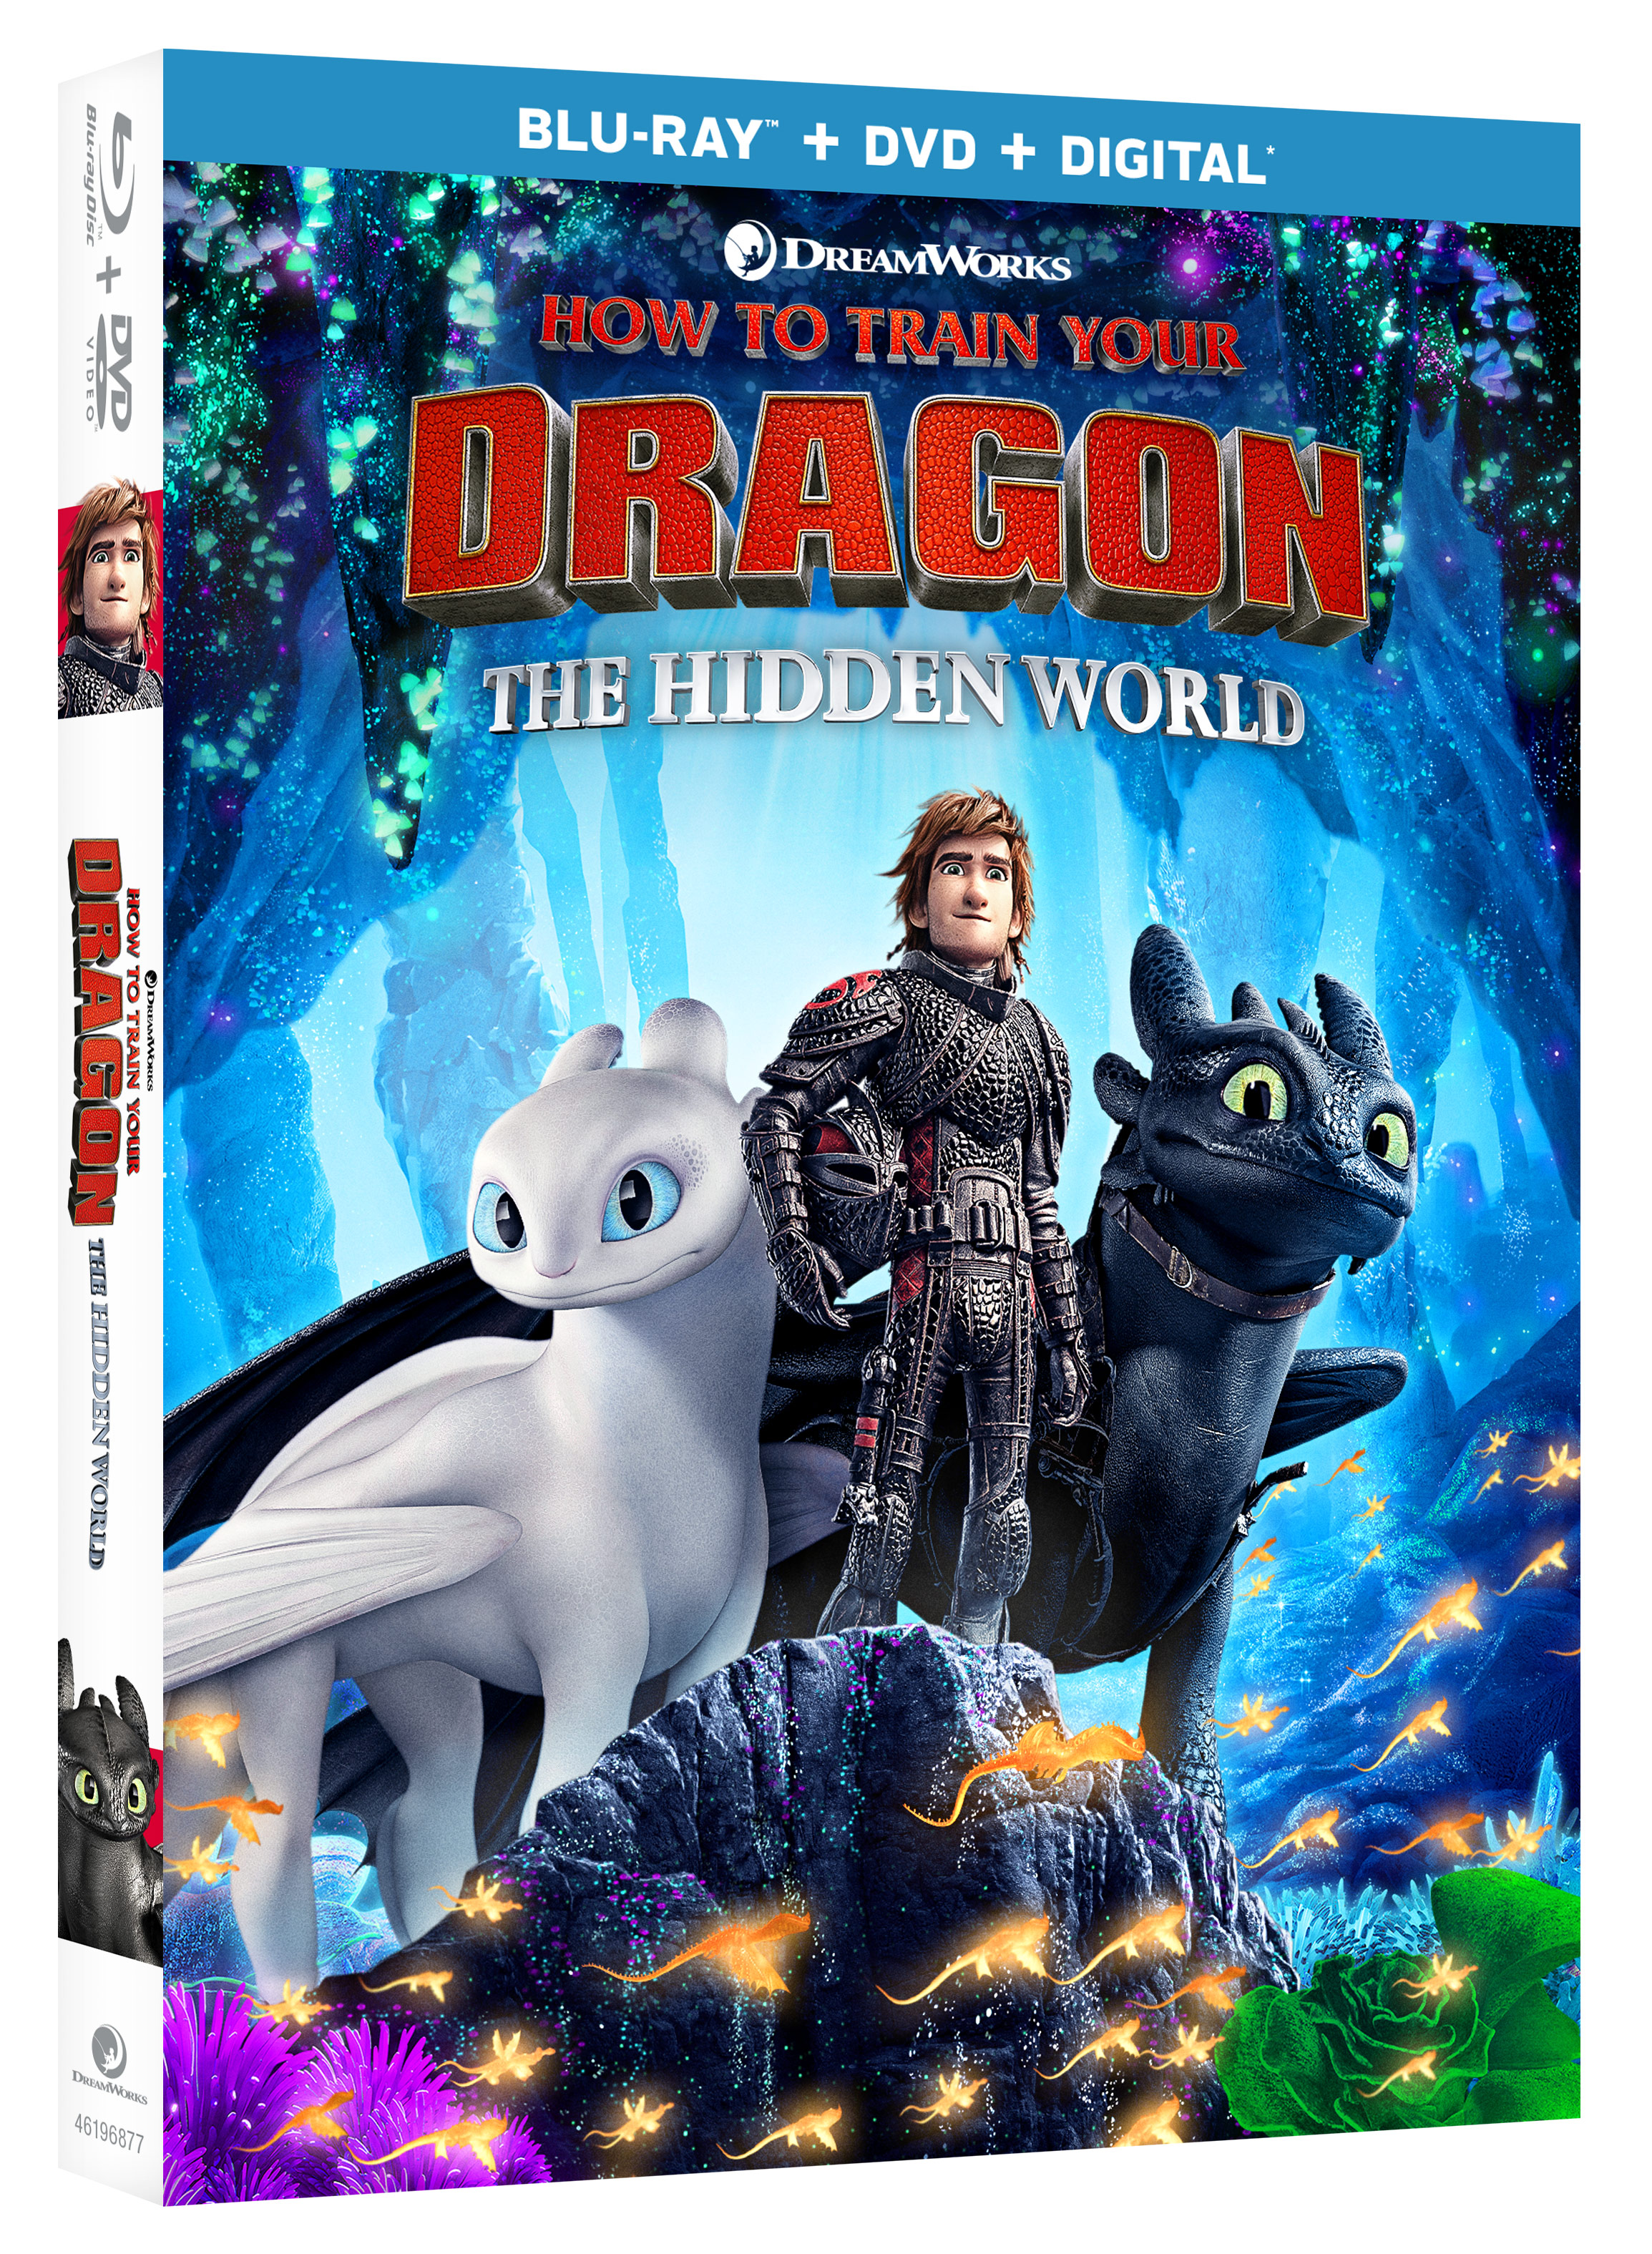 How to Train Your Dragon: The Hidden World on Blu-ray and DVD